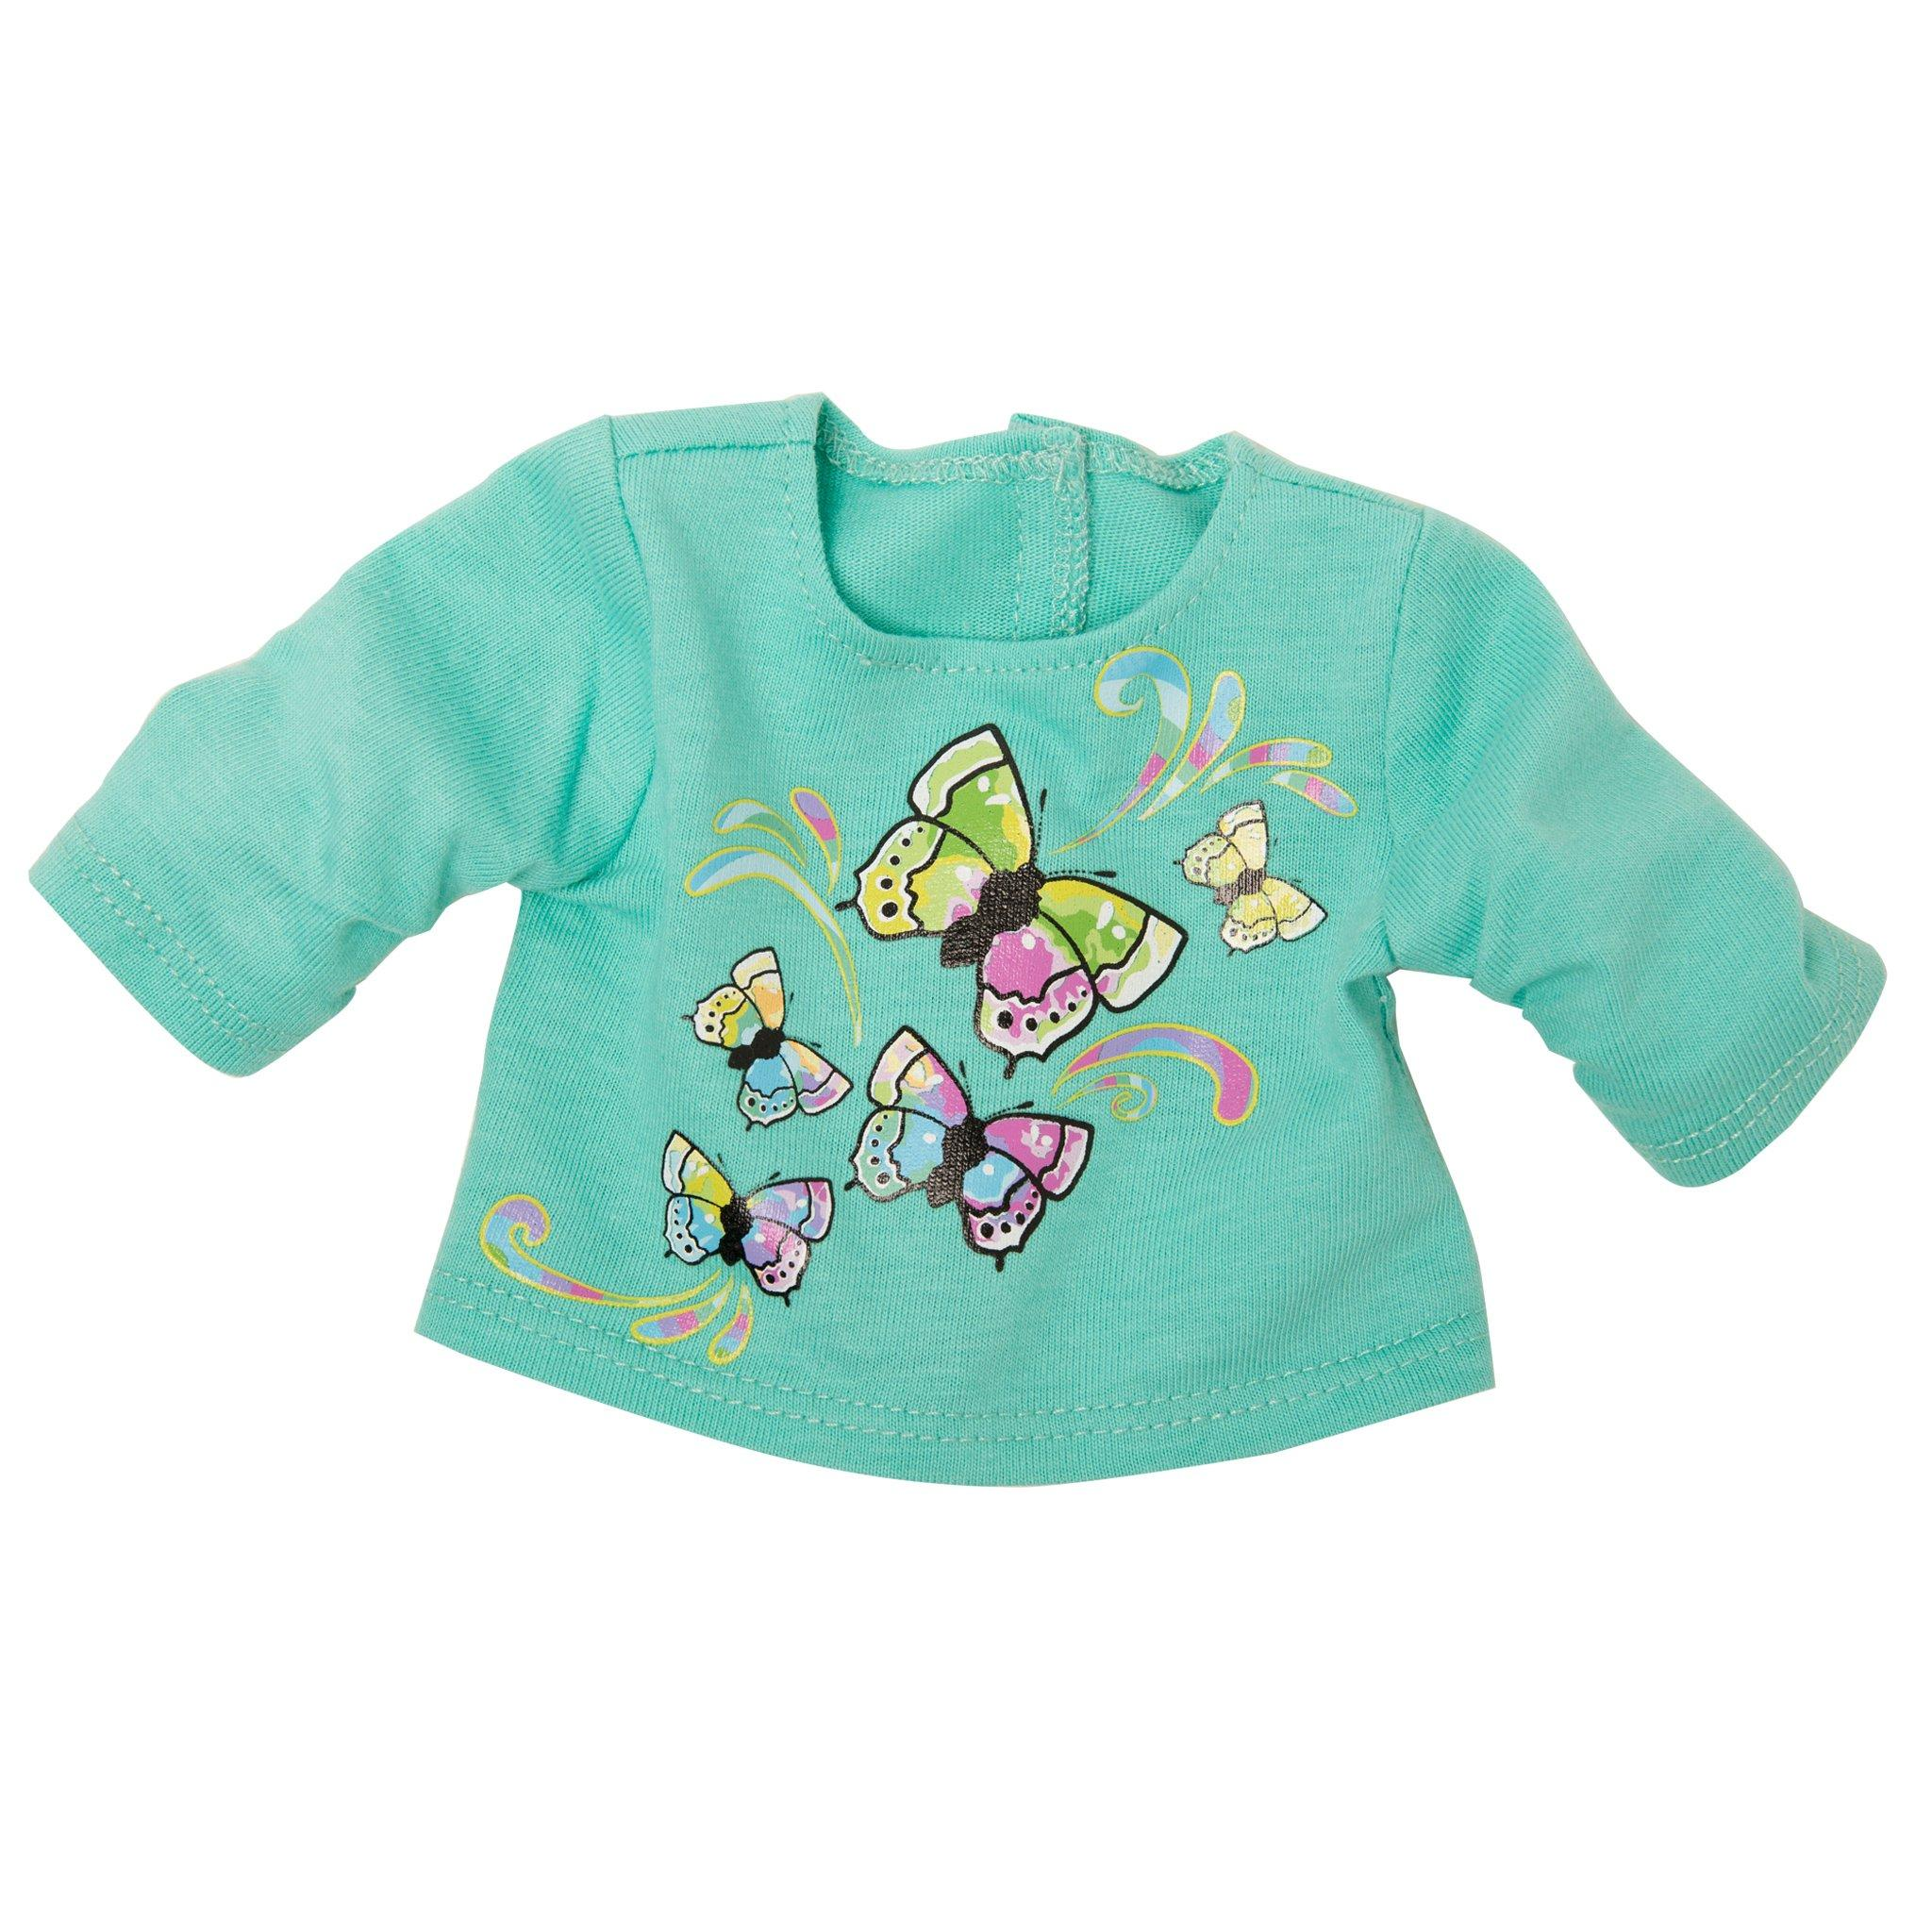 Maplelea 18 inch doll Taryn's green butterfly graphic t-shirt.